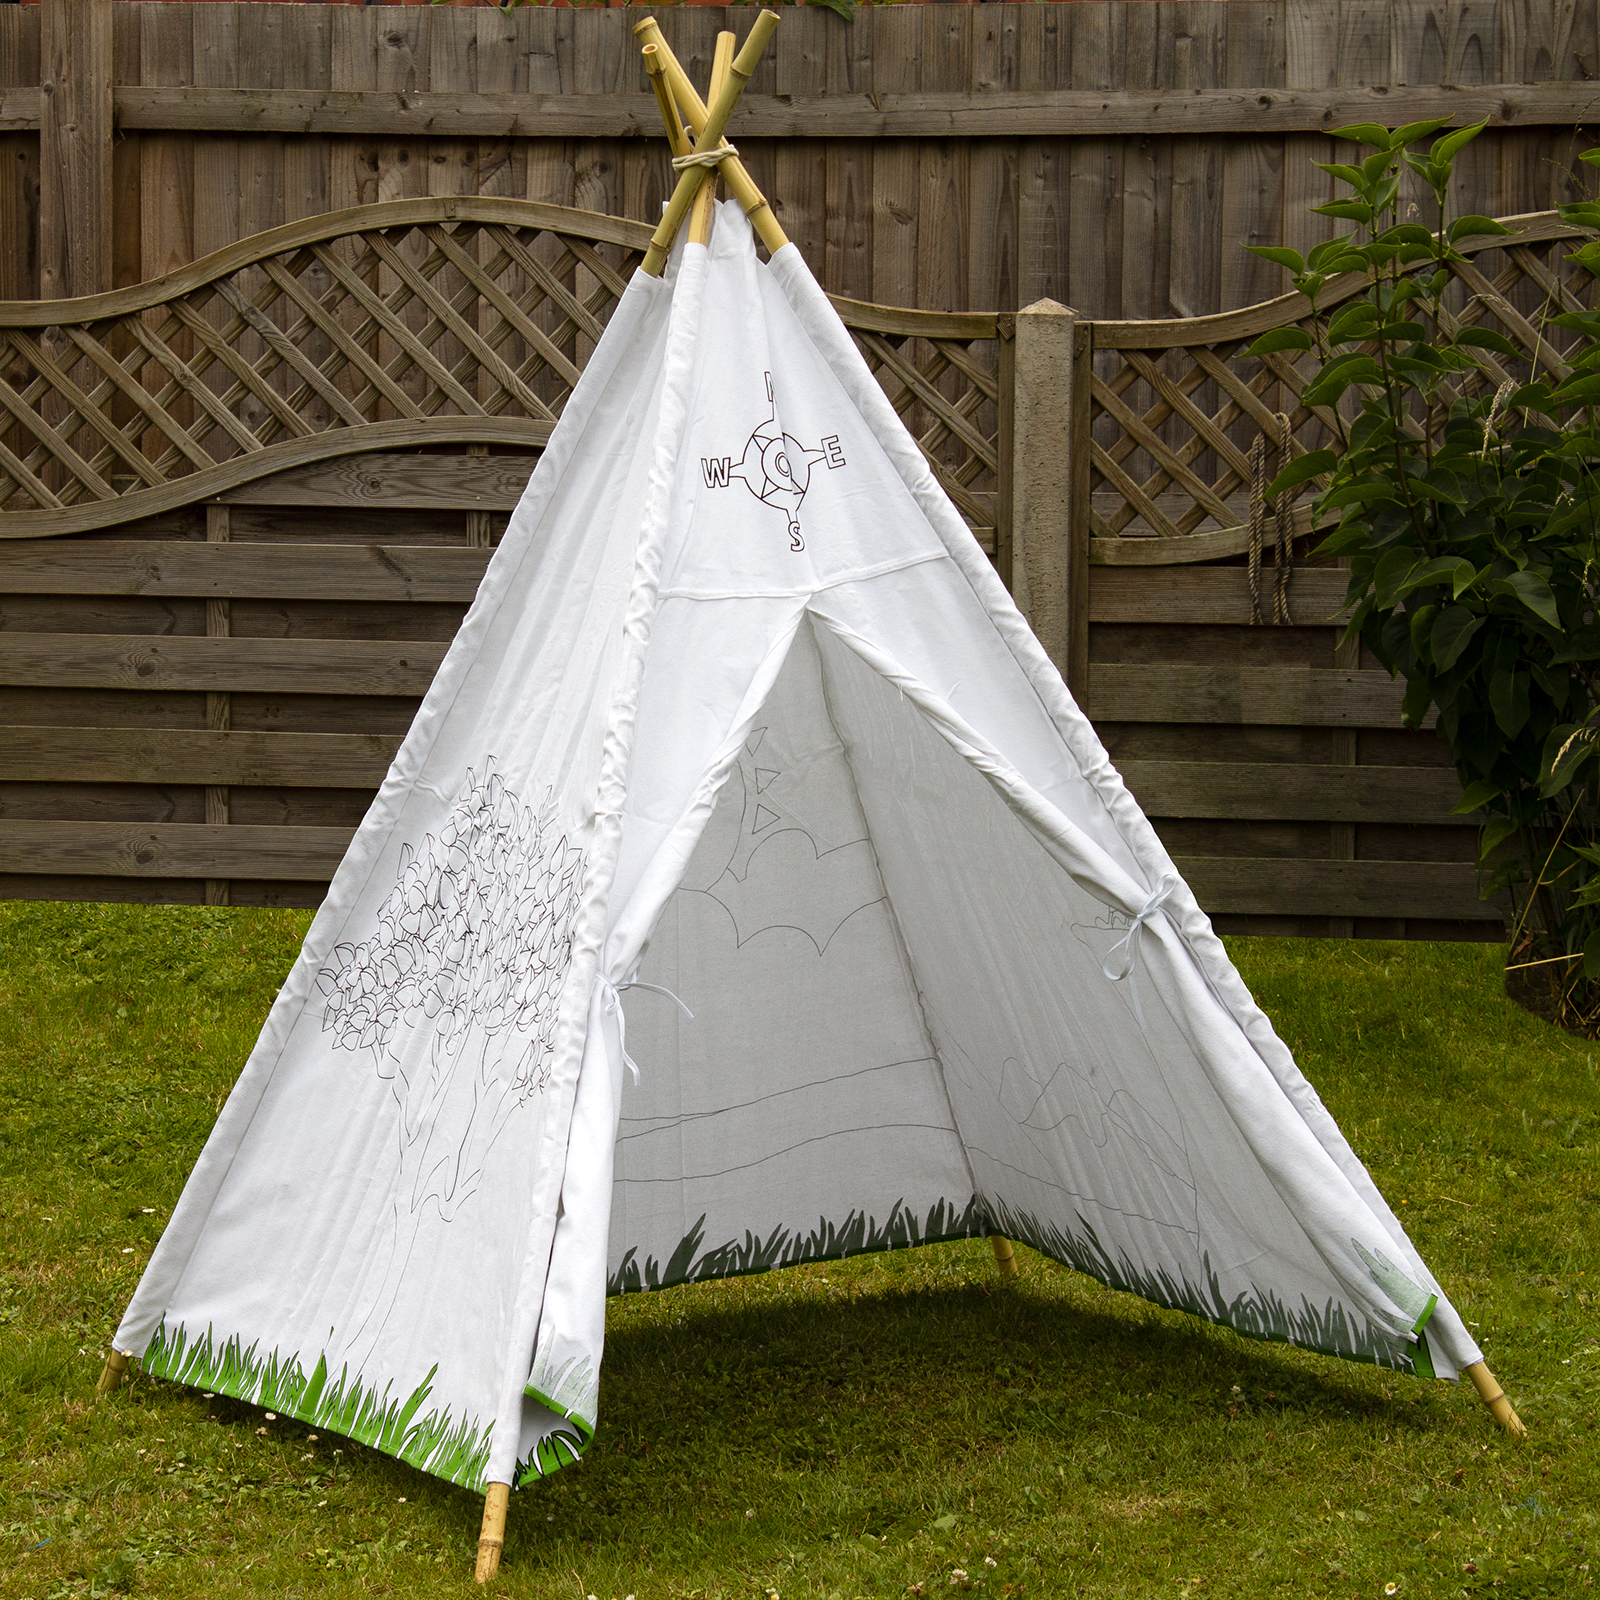 competitive price af1c8 b024d Details about COMPASS TEEPEE TENT OUTDOOR GARDEN KIDS PLAY INDOOR NATURAL  BAMBOO POLES CANVAS